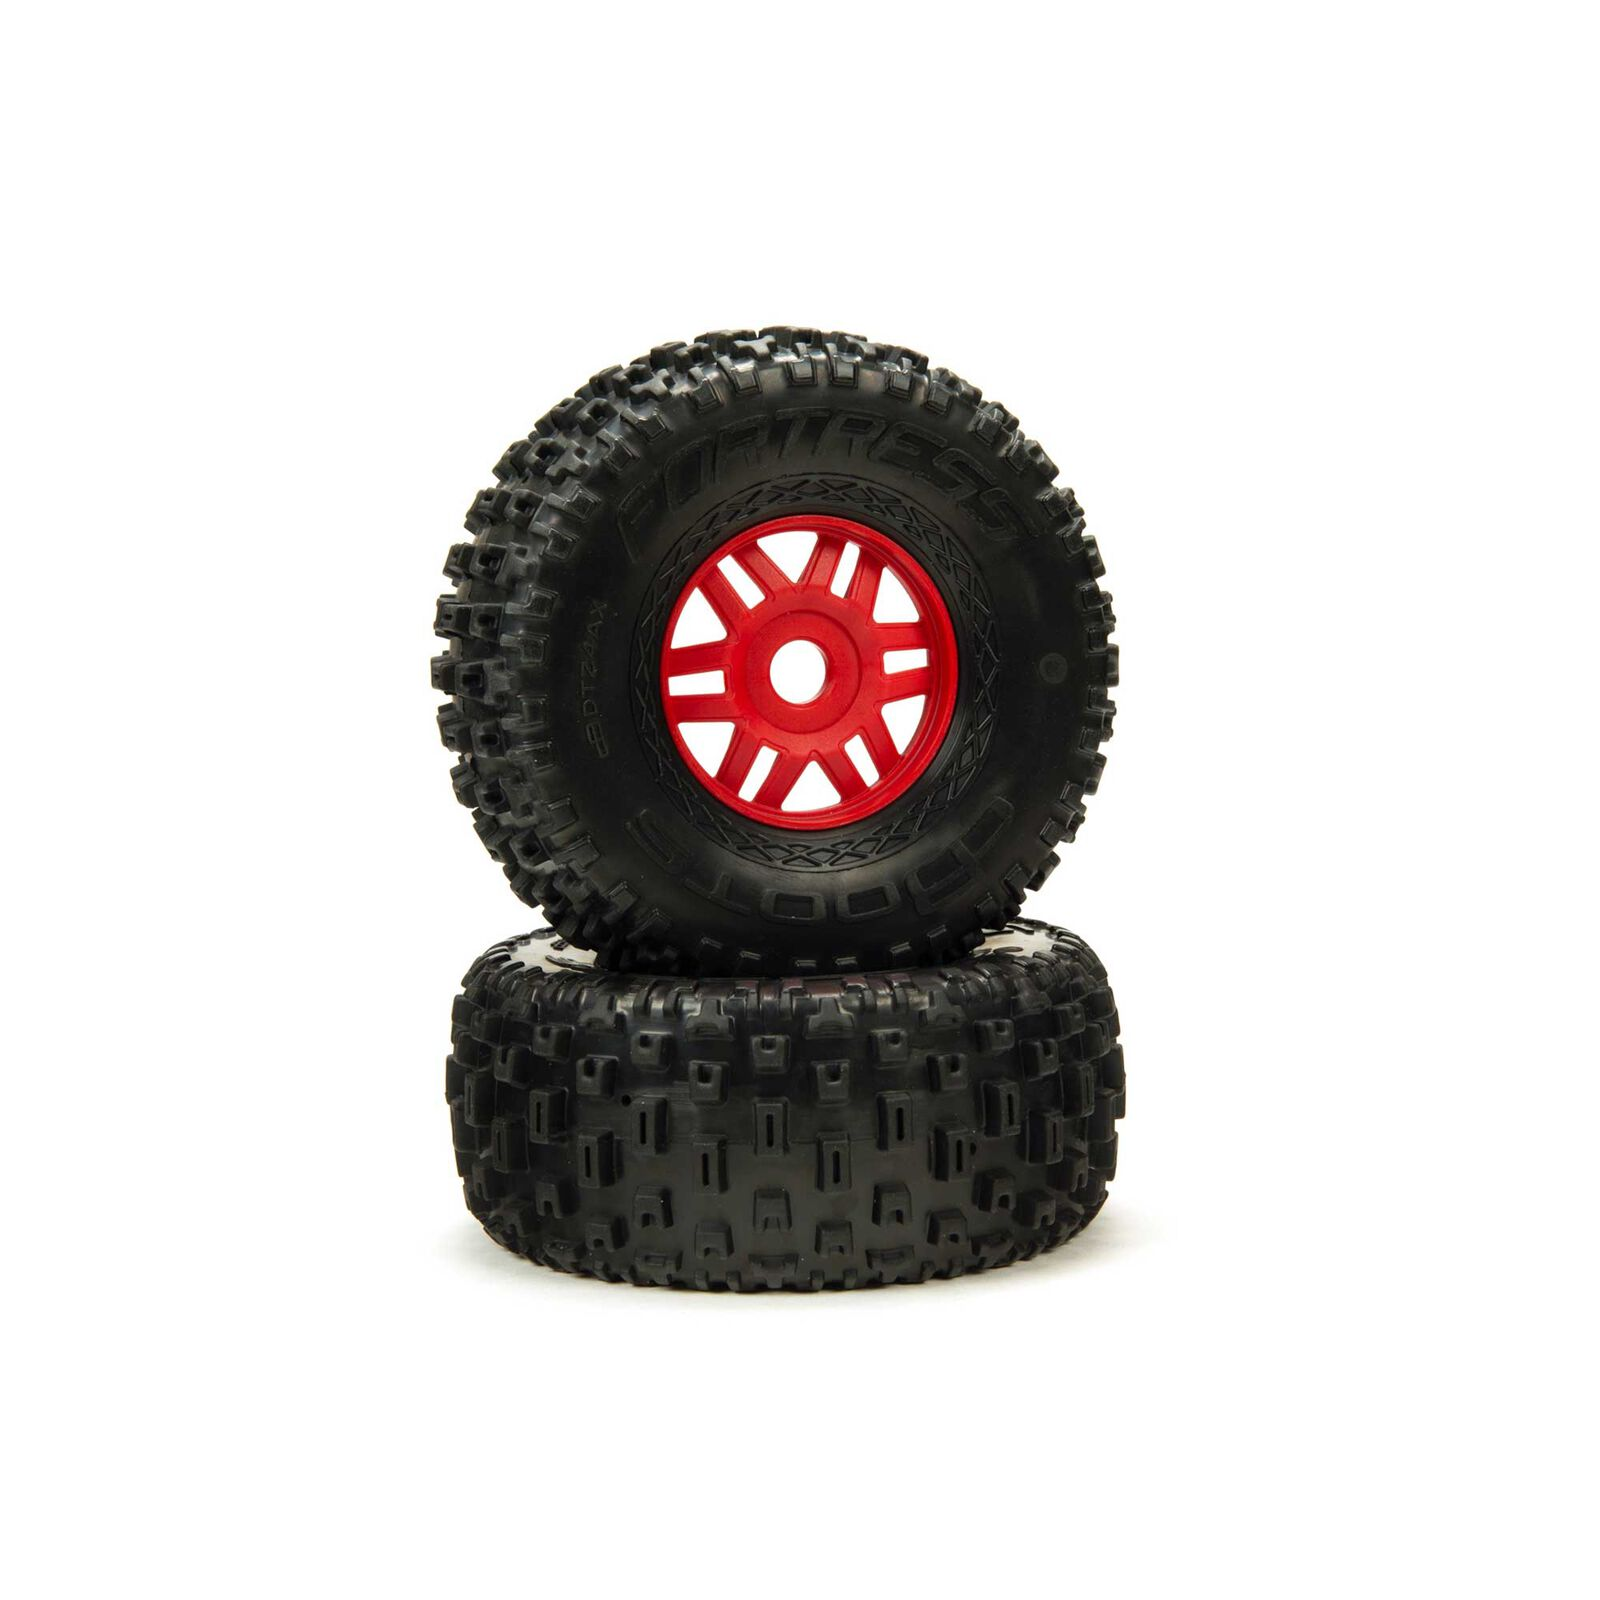 1/8 dBoots Fortress Front/Rear 2.4/3.3 Pre-Mounted Tires, 17mm Hex, Red (2)